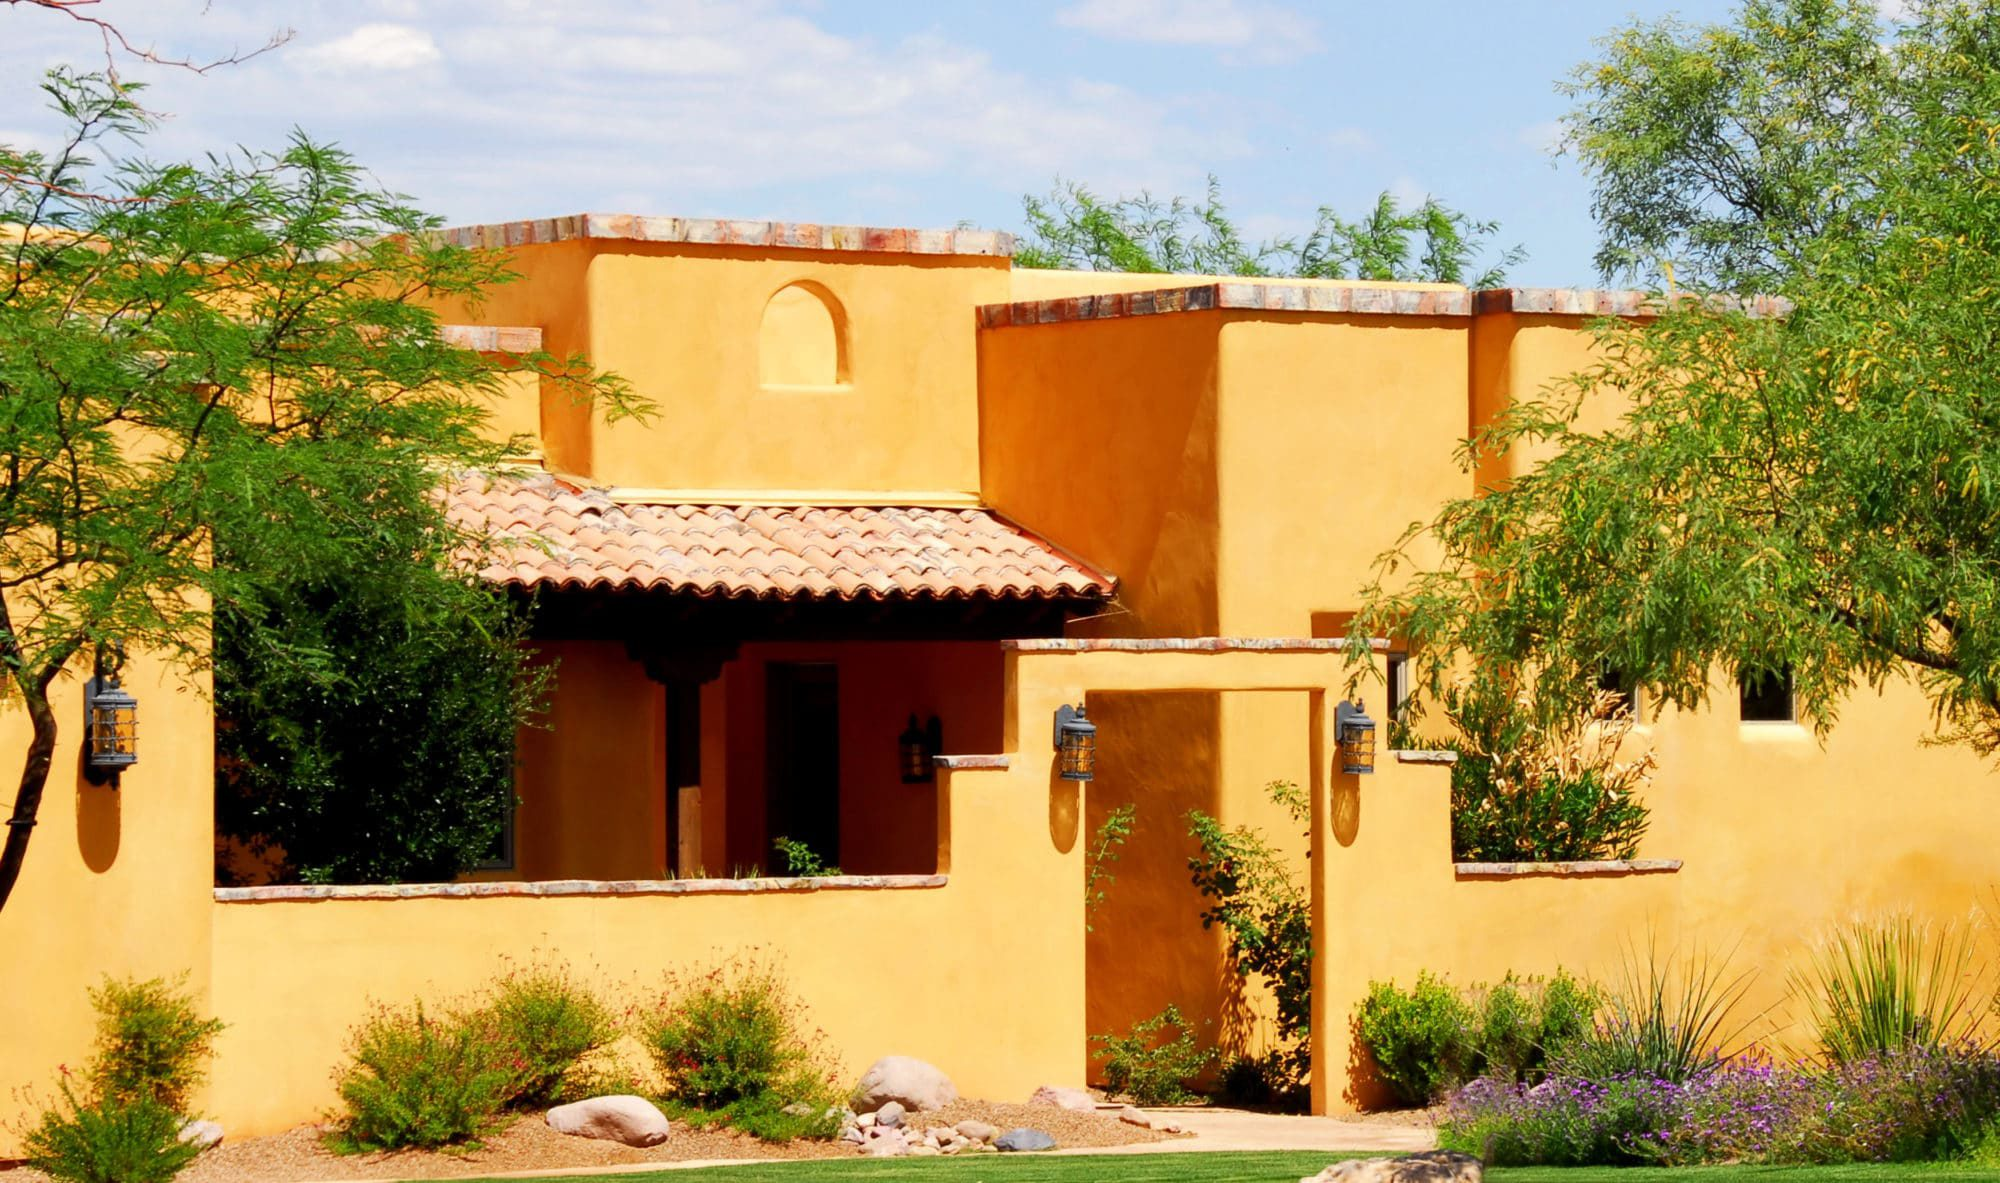 Look at the sunny glow on this new Arizona adobe style home with beautiful subtle southwestern stone accents all around the edges.